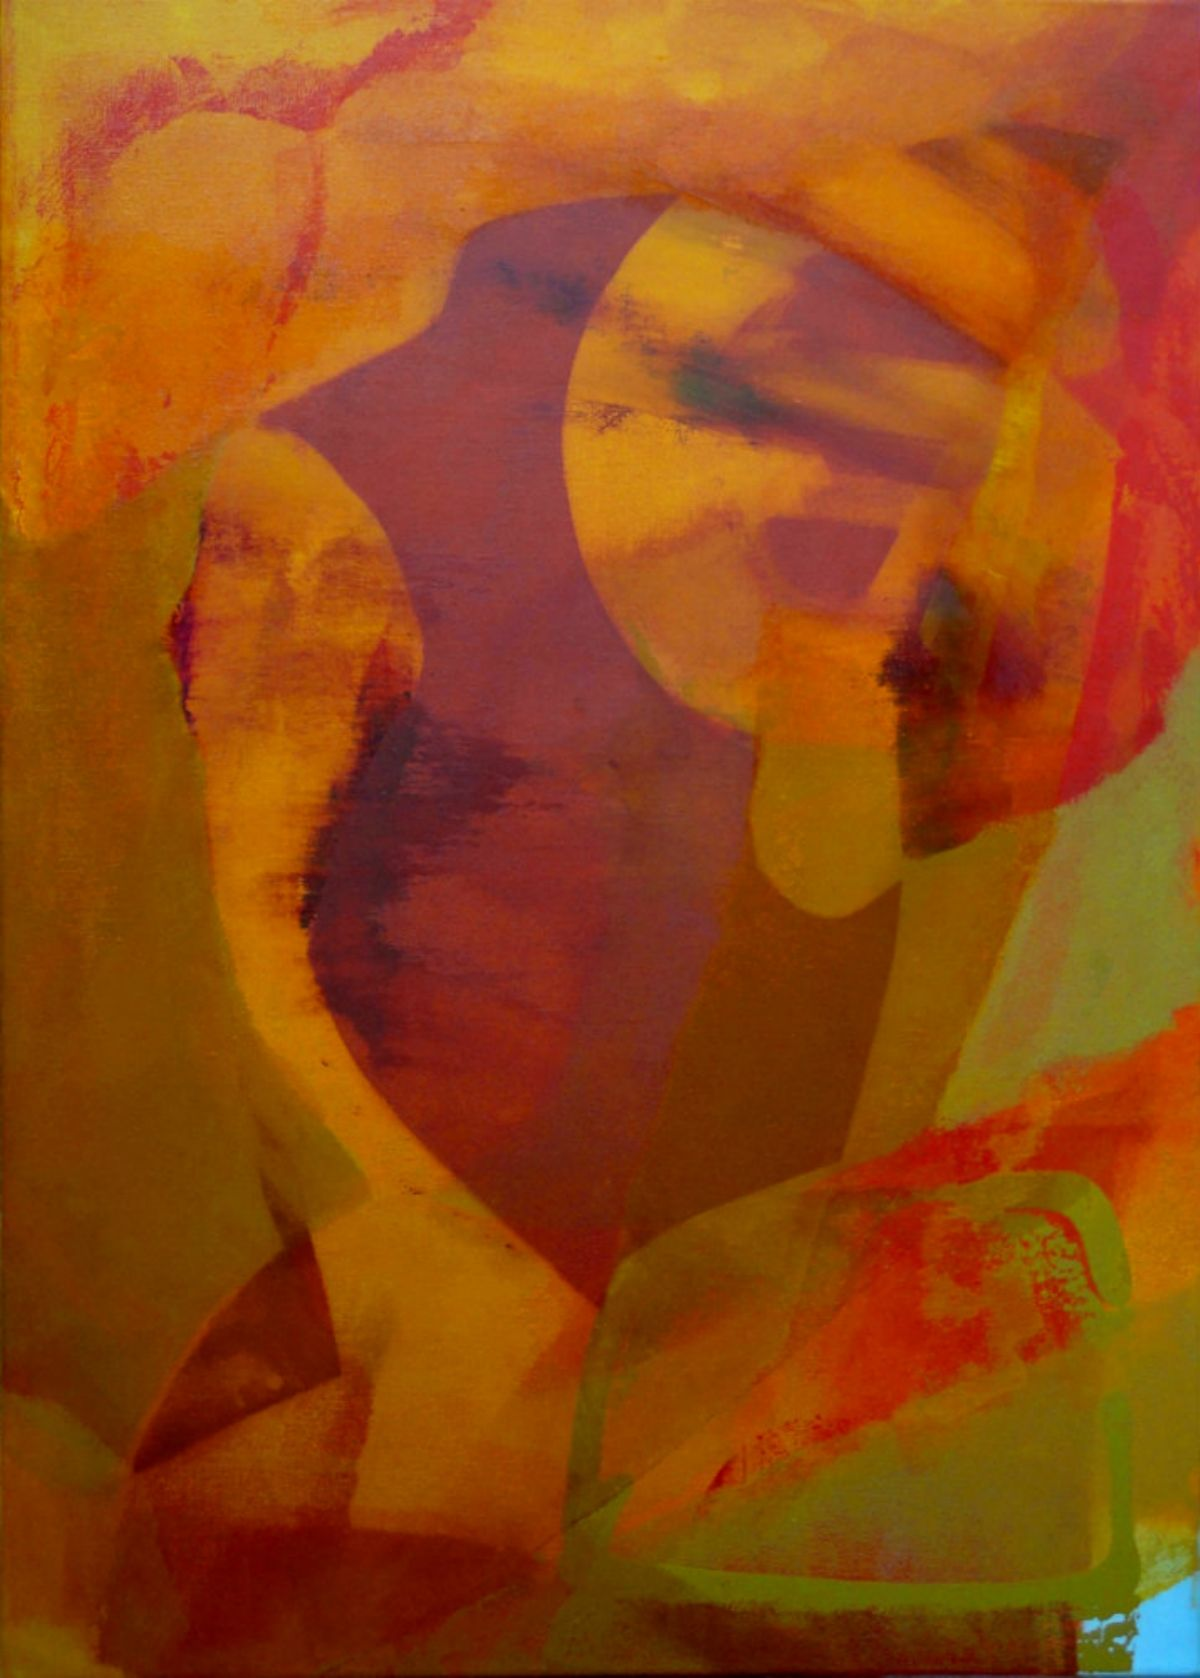 Uros Paternu 2013 Untitled 05 artwork by Uros Paternu - art listed for sale on Artplode